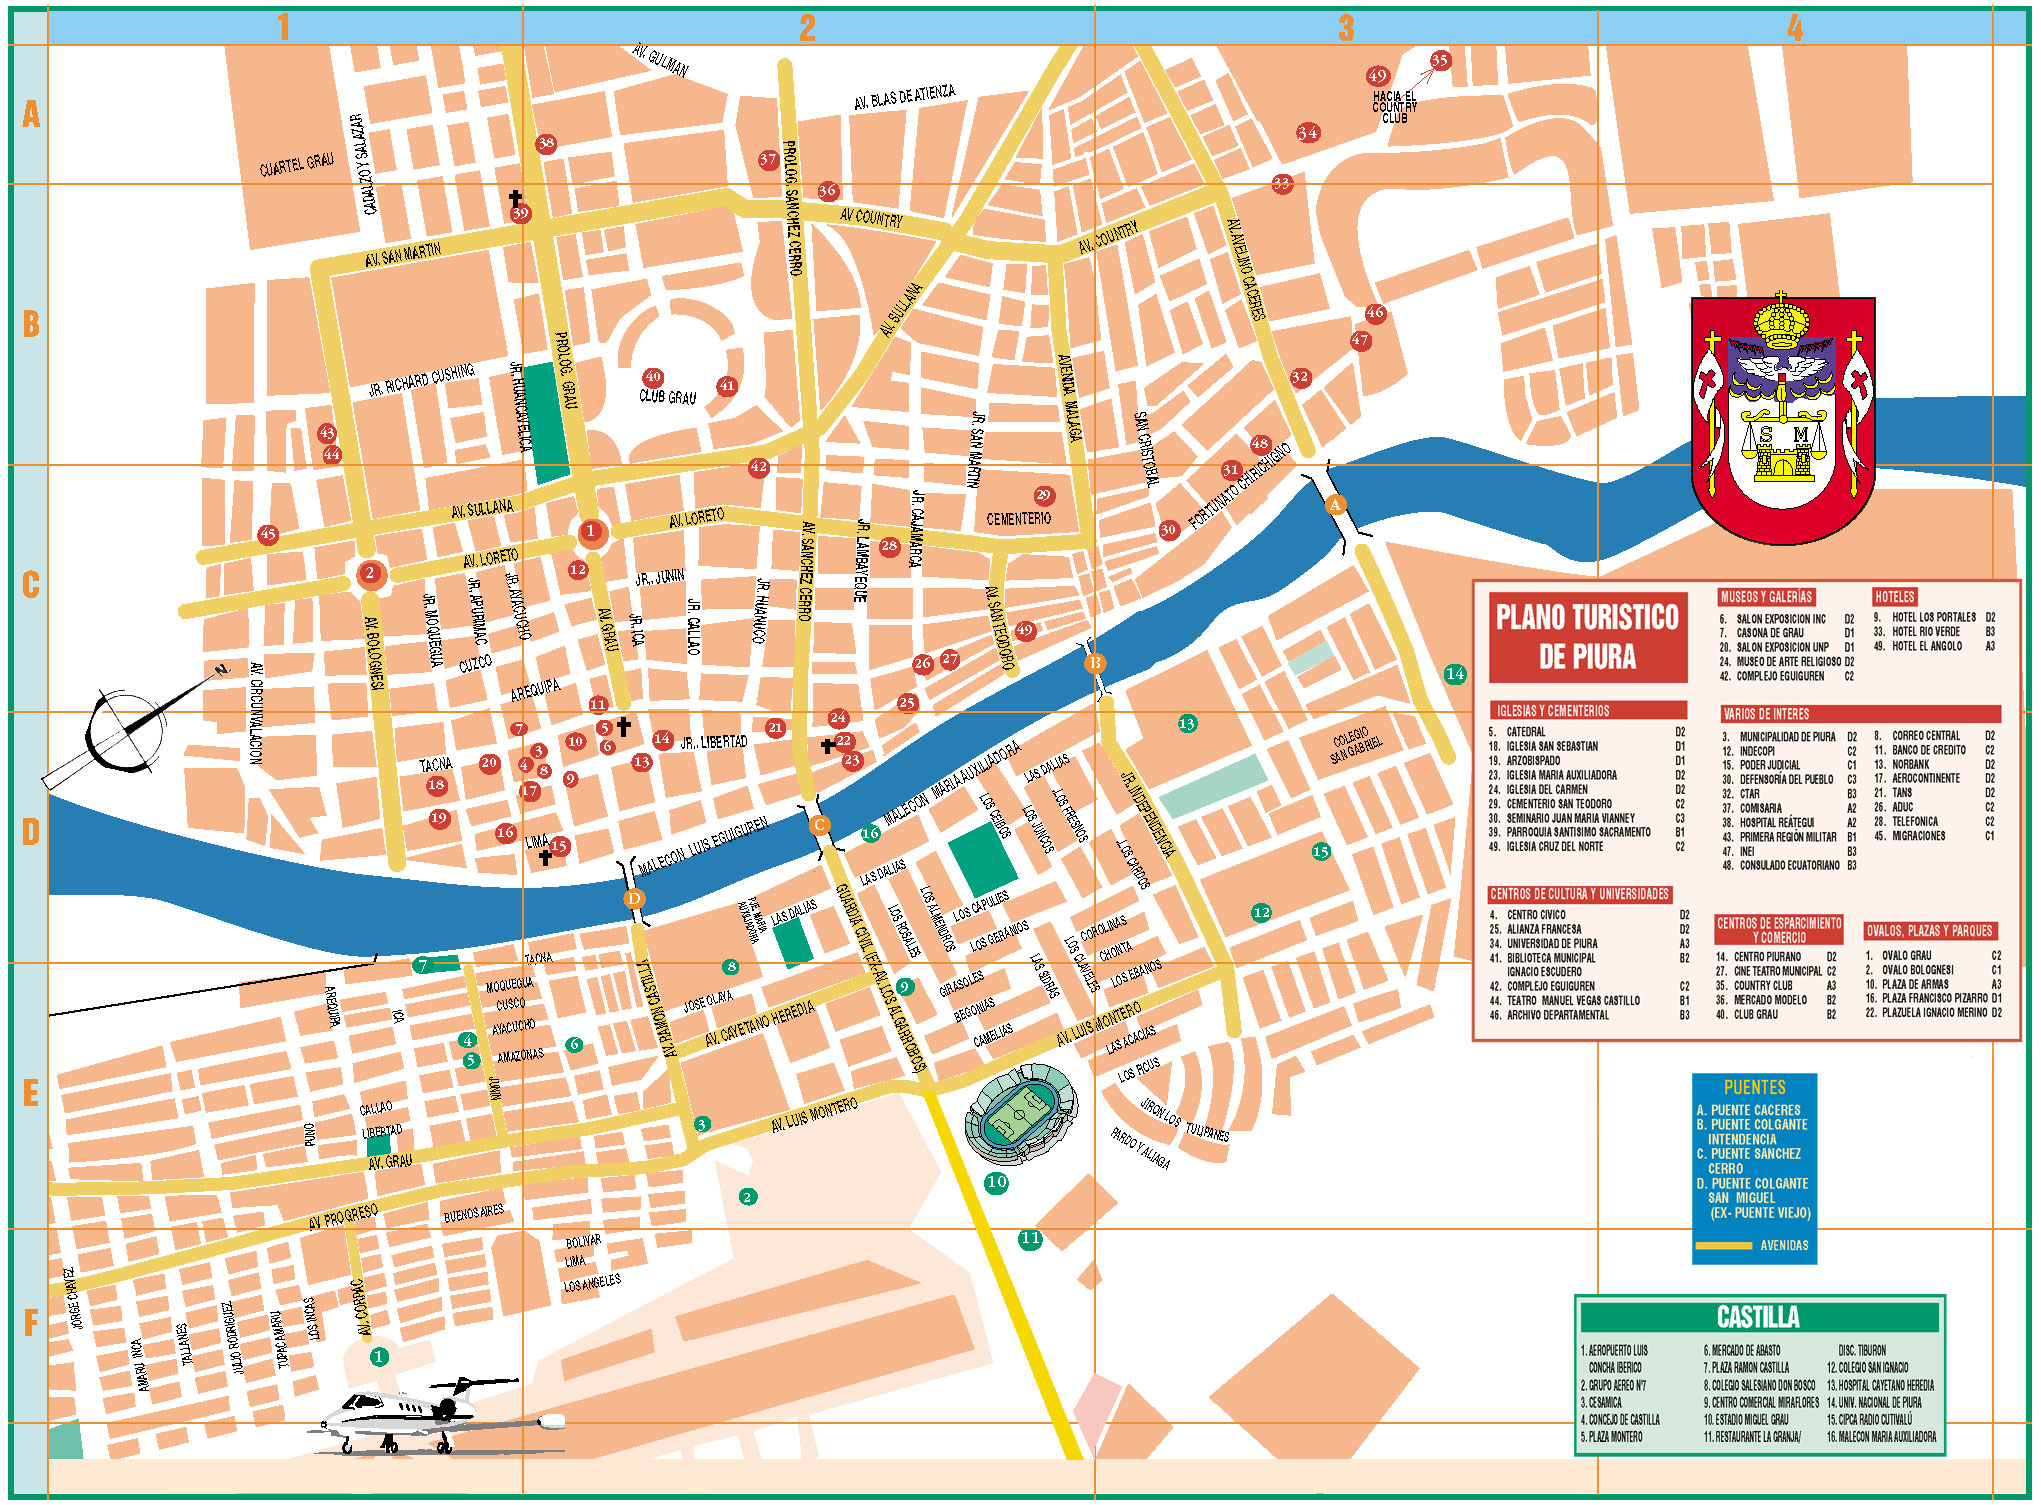 Piura Tourist Map Piura Peru mappery – Tourist Map Of Peru